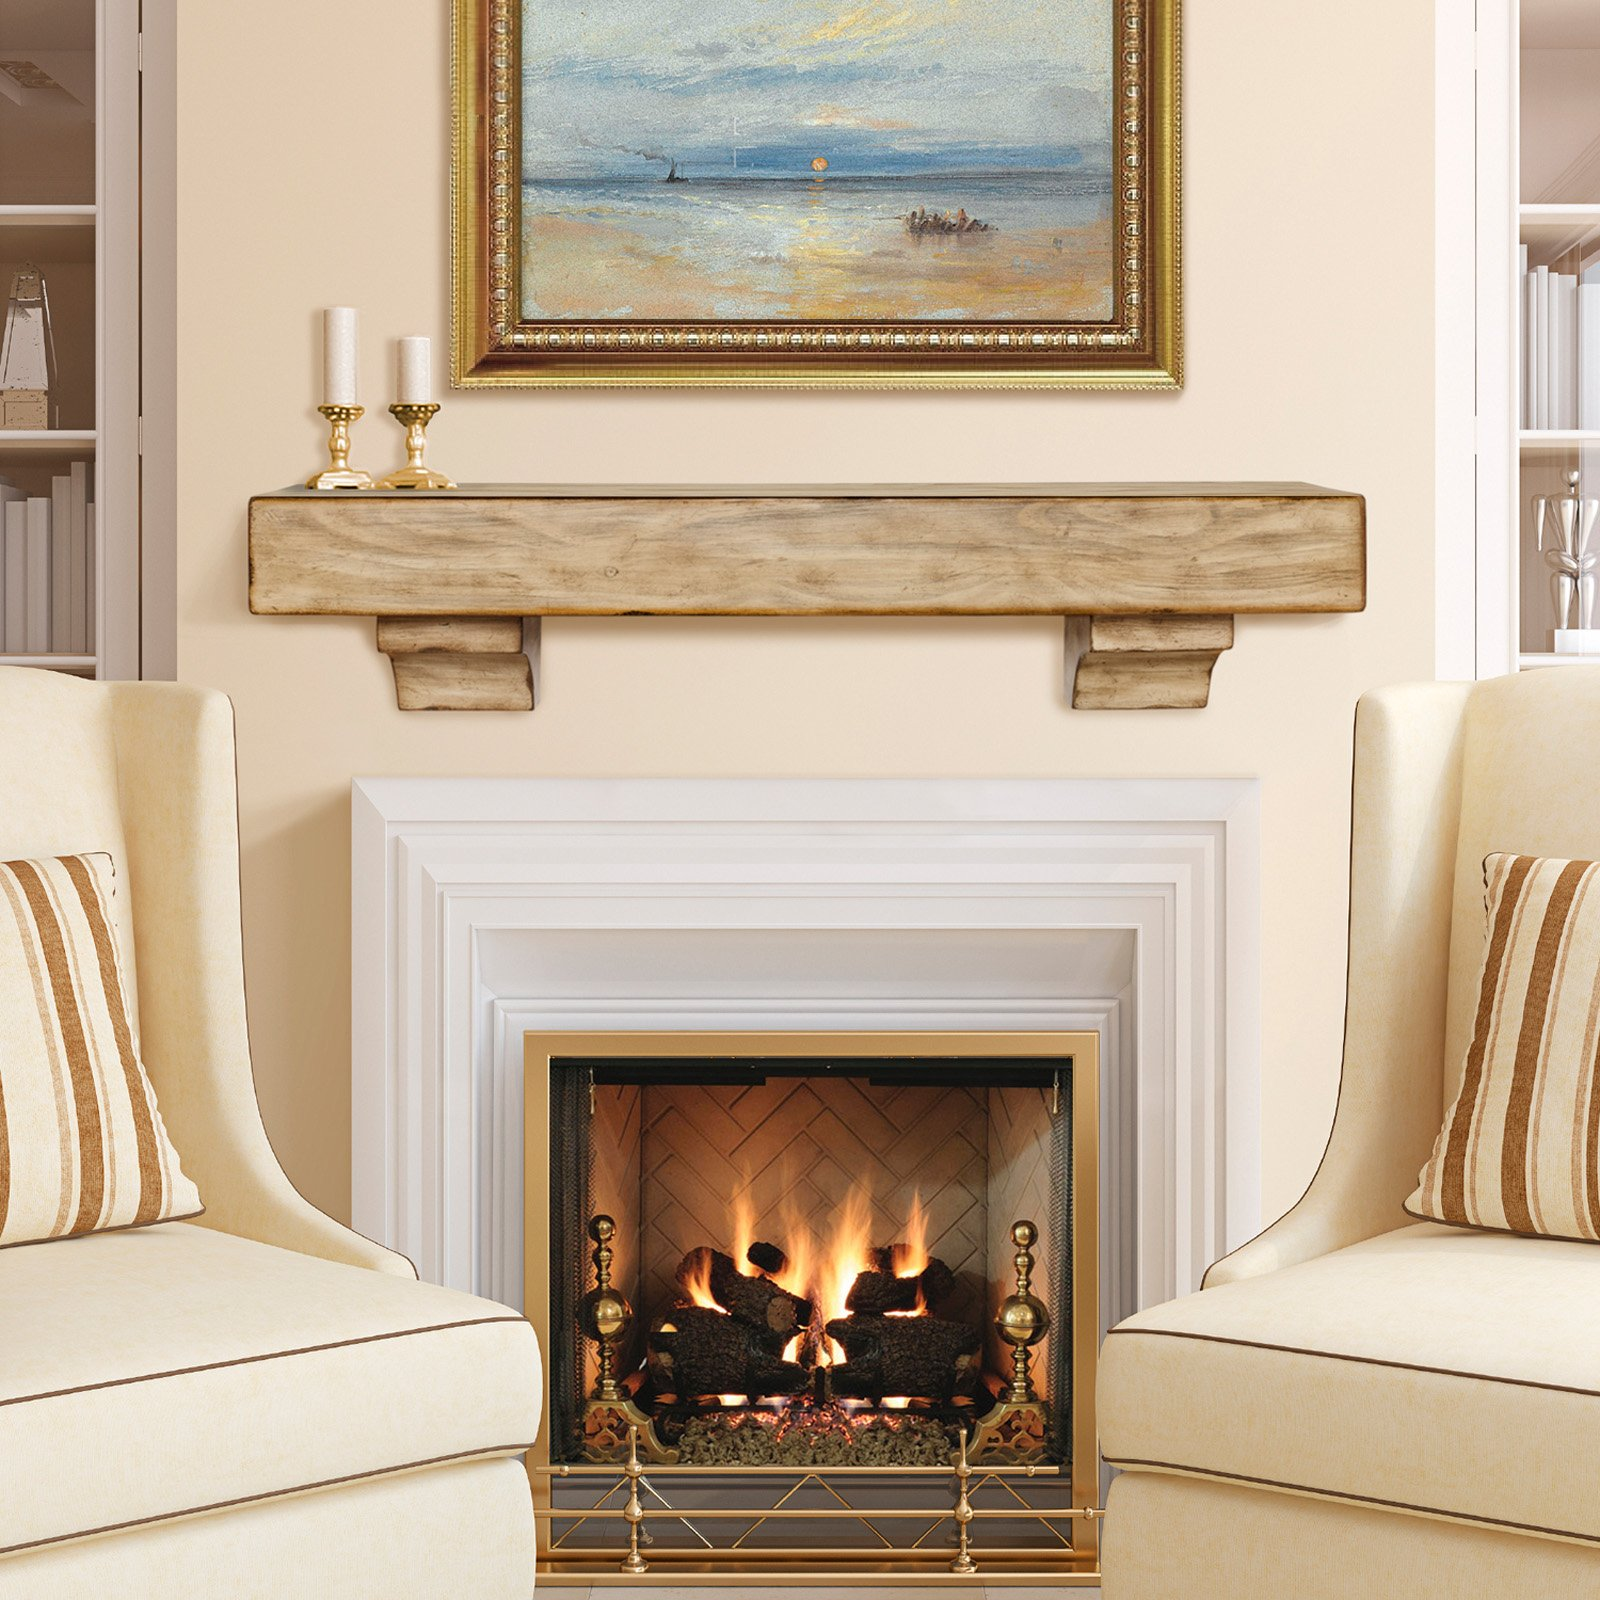 blog and mantels ideas how to home carpentry improvement a fireplace make mantel cherry utah